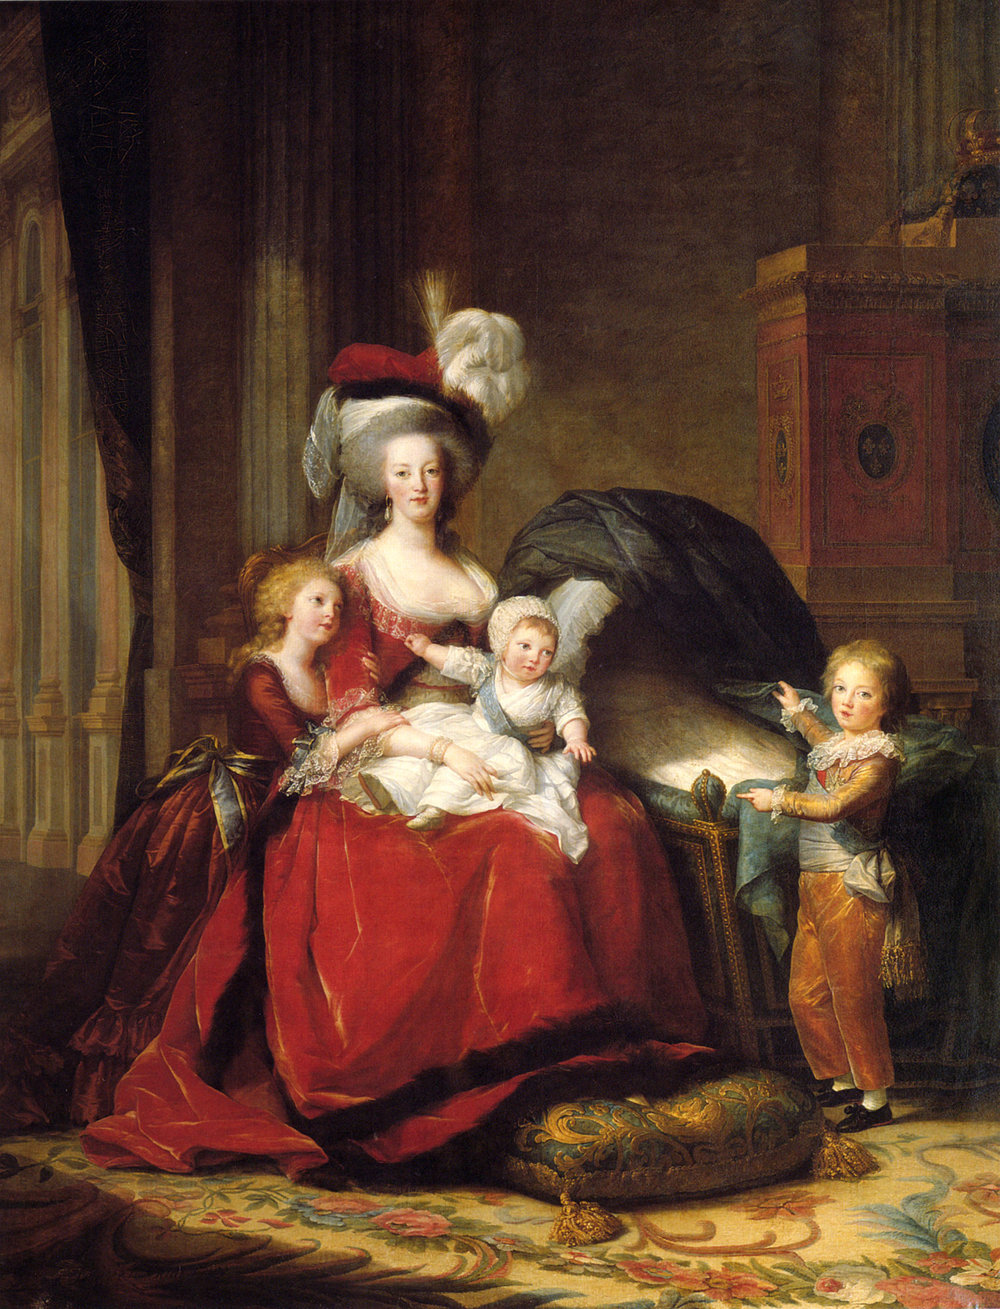 Elisabeth Vigée Lebrun, Marie Antoinette and Her Children, 1787, oil on canvas, Palace of Versailles